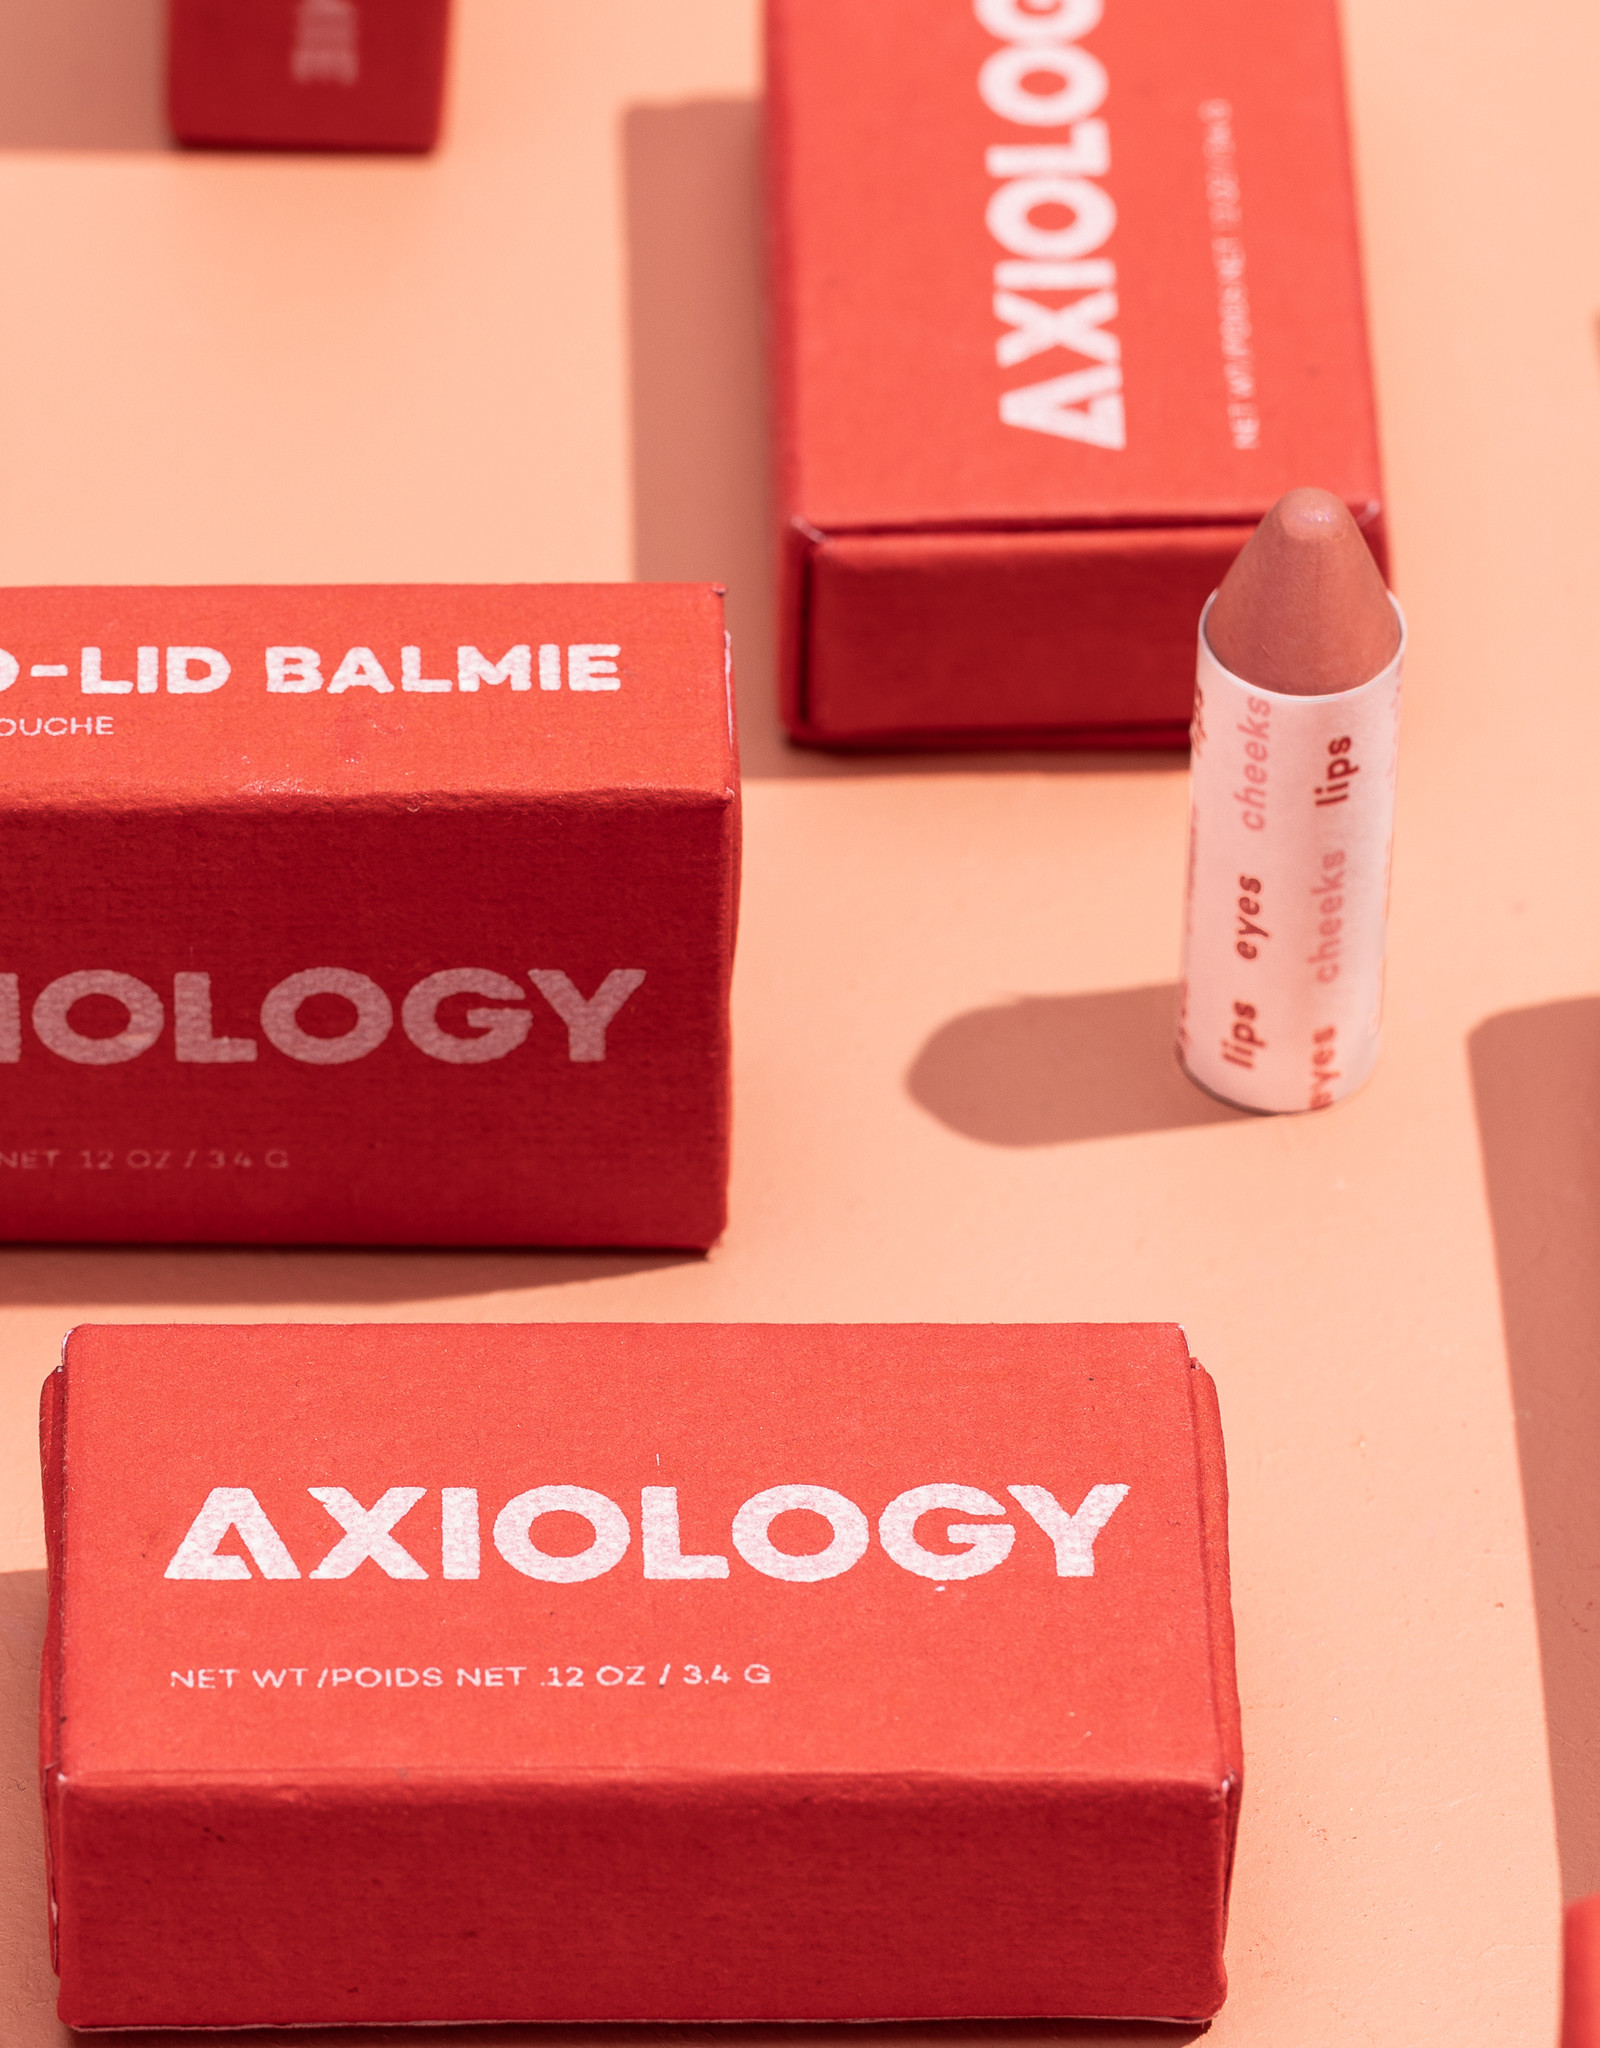 Axiology Make up balmie: Champagne